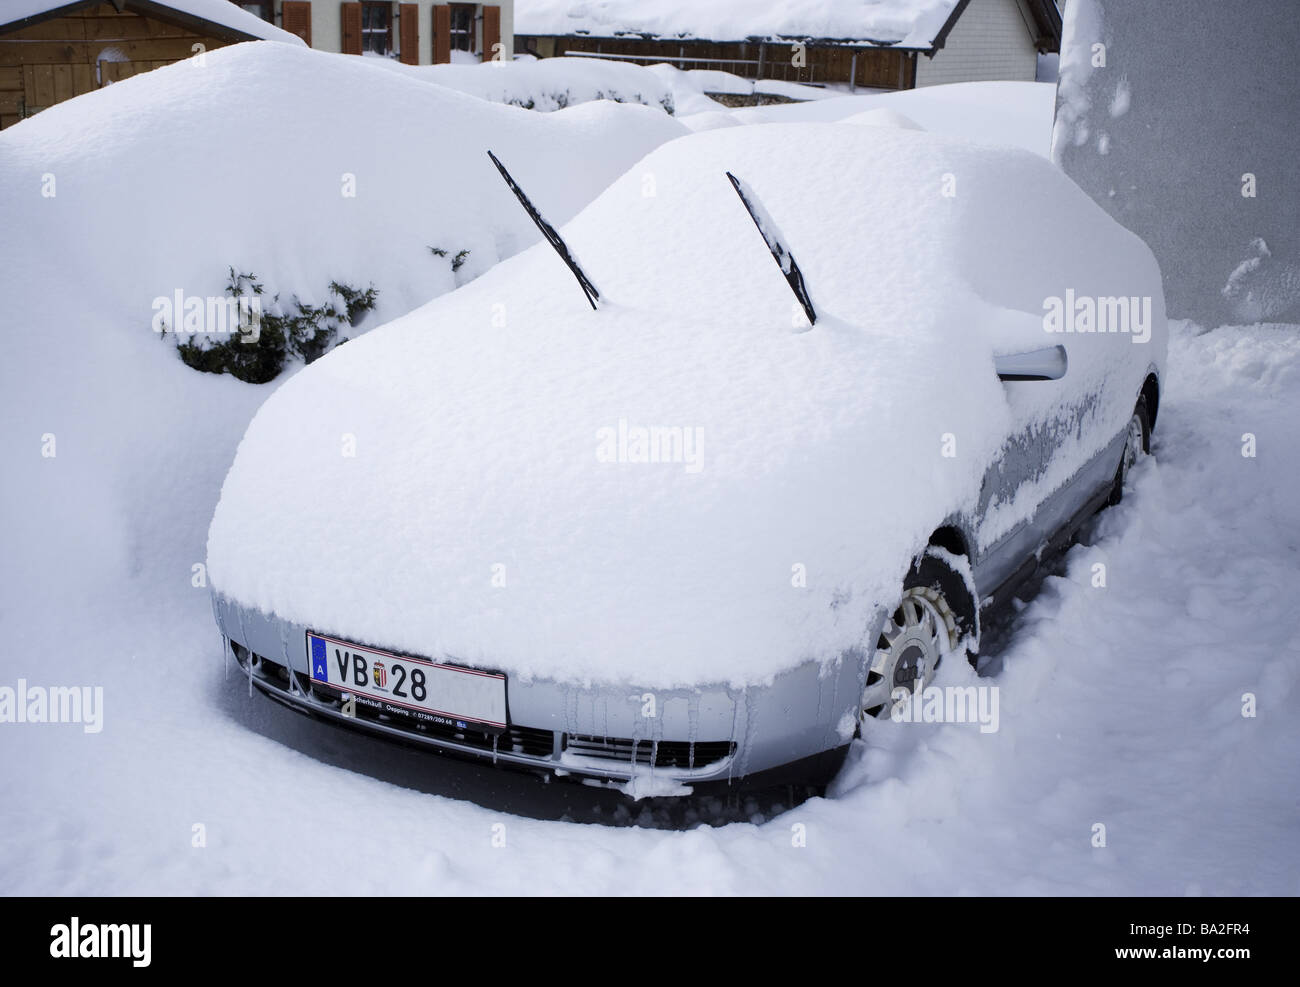 Parked parking place car gotten snowed in winters marks please unrecognizable does Stellplatz vehicle private car - Stock Image